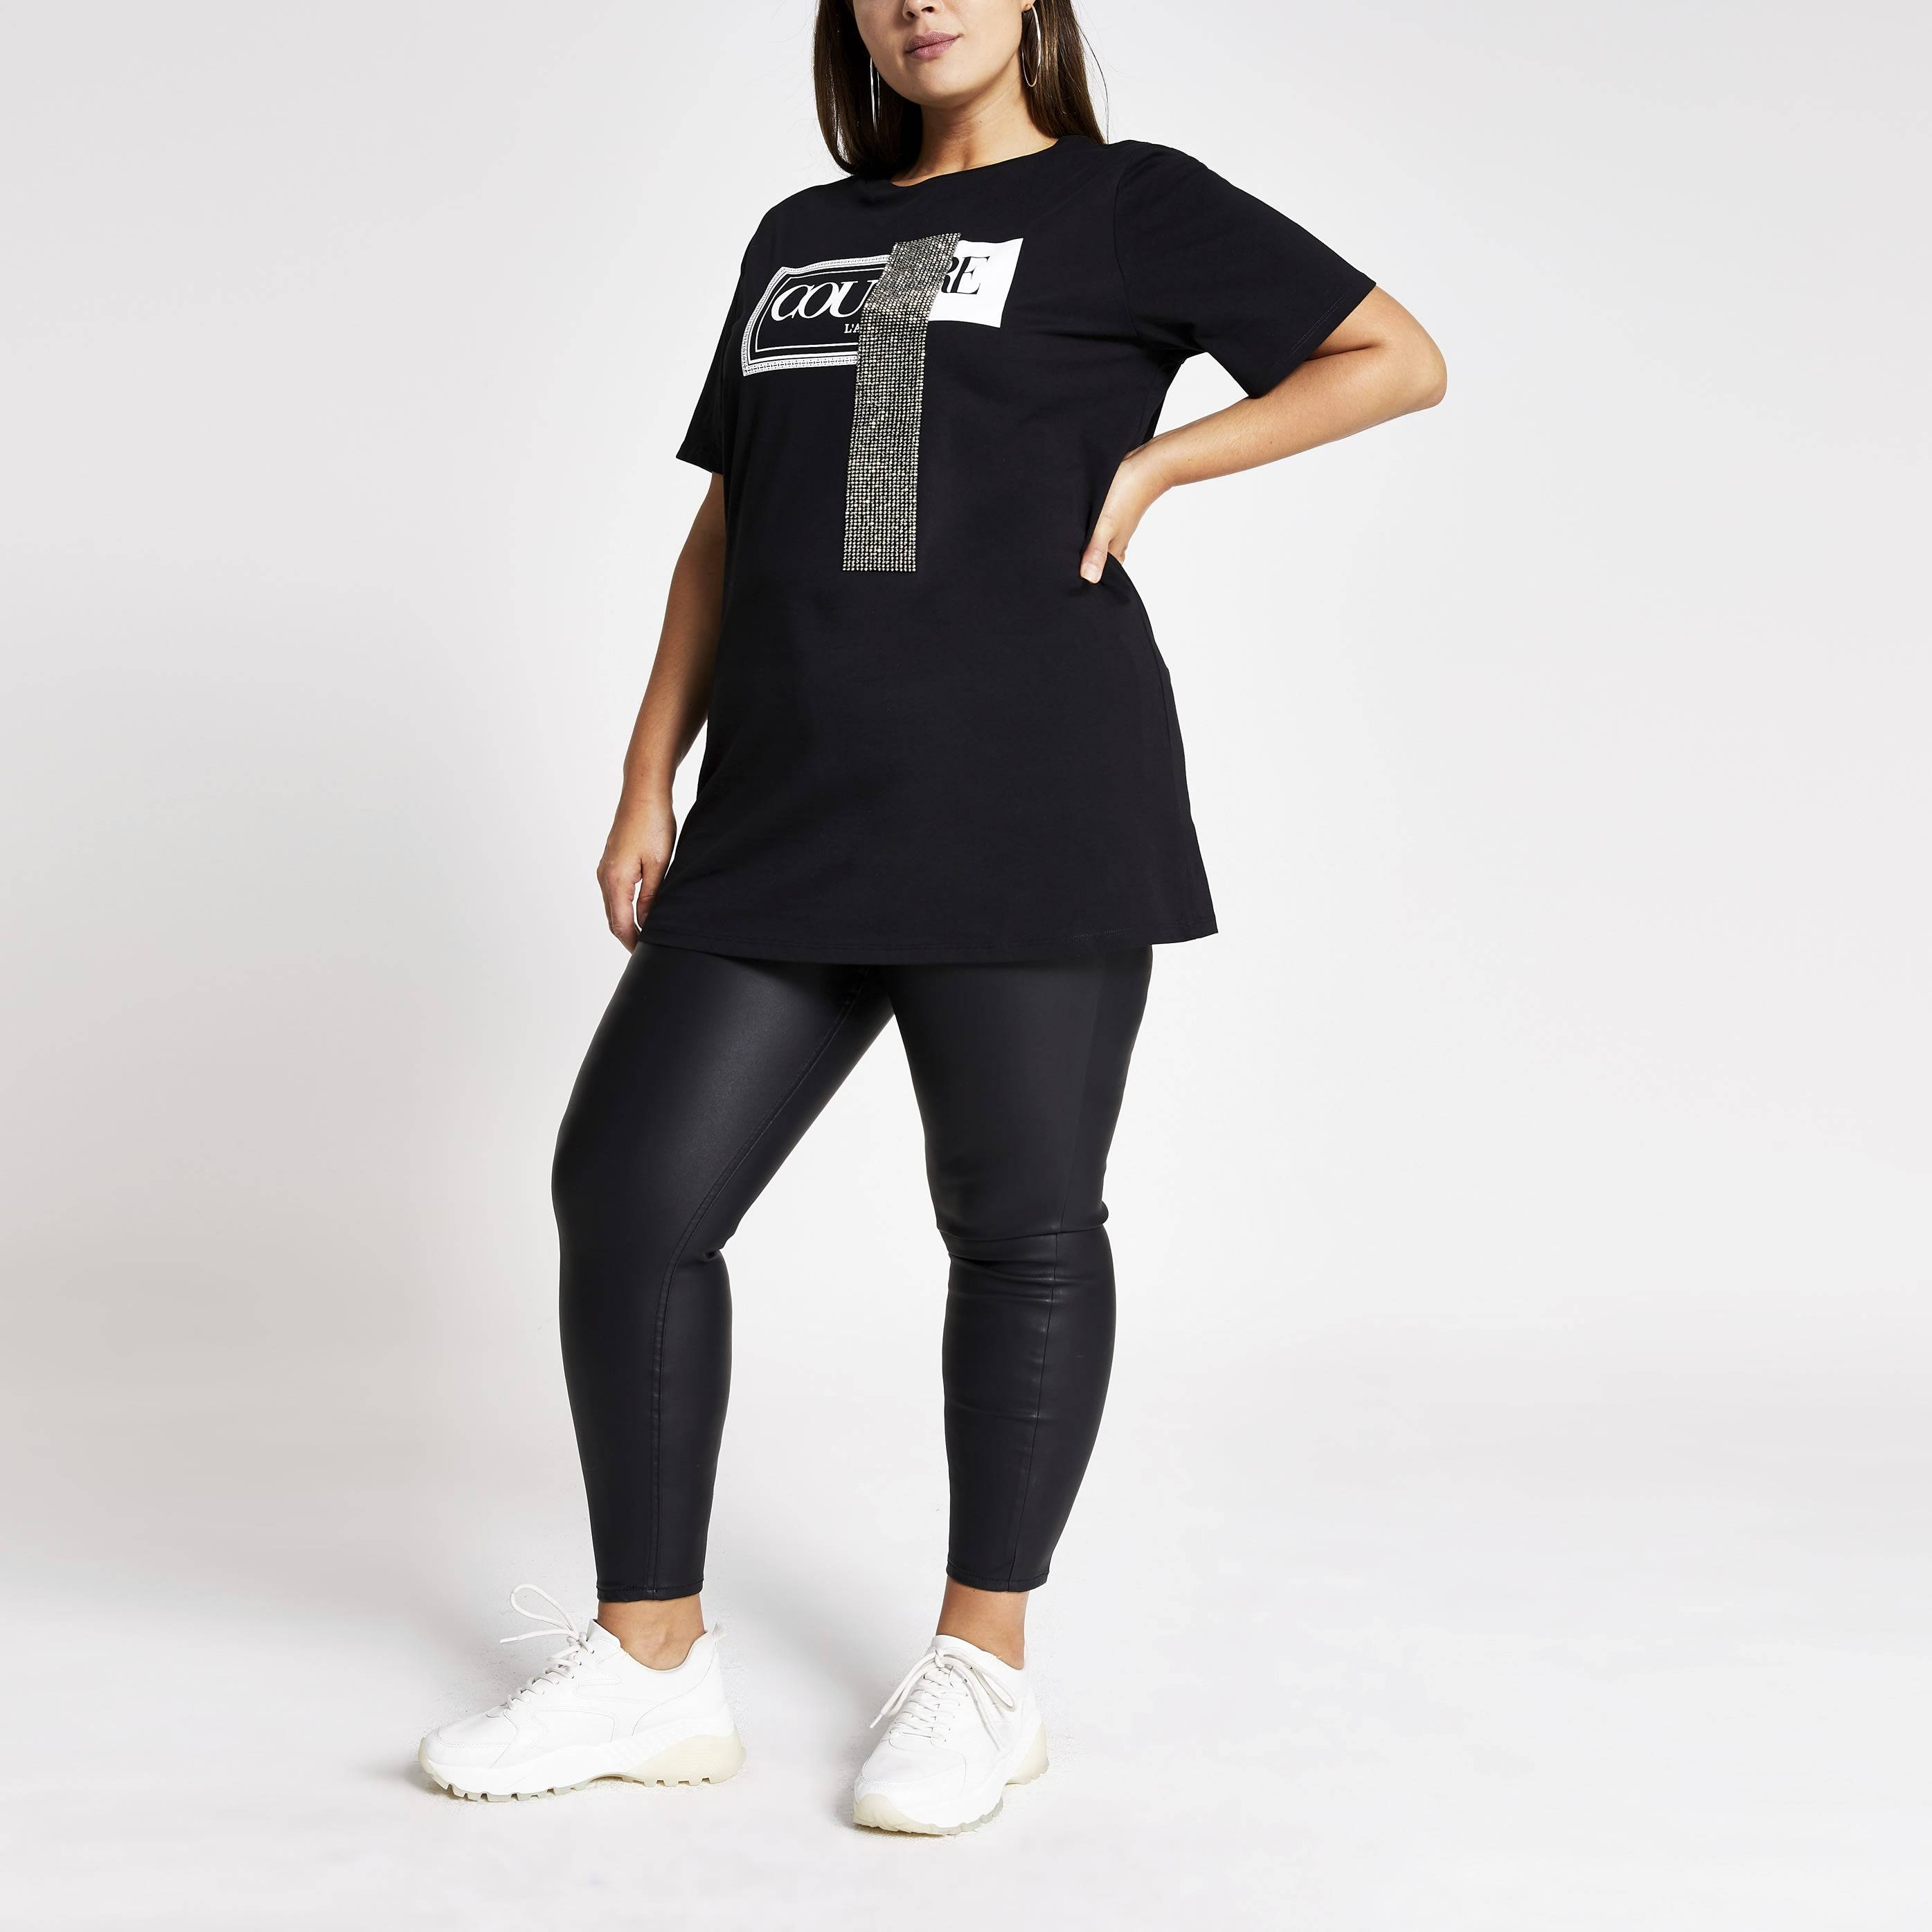 River Island Womens Plus Size Black 'Couture' embellished T-shirt (22)